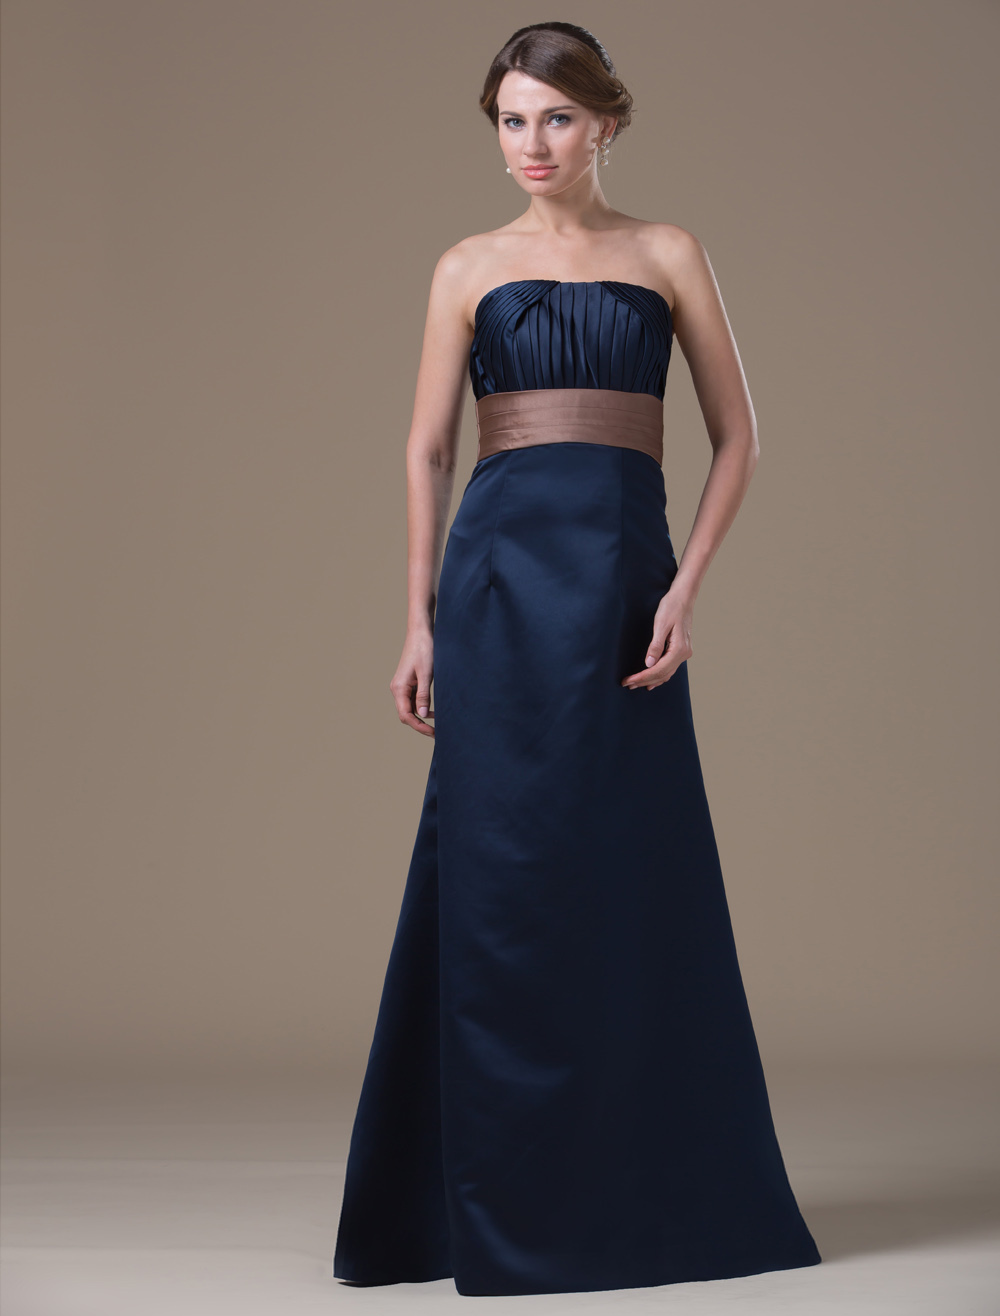 A-line Dark Navy Satin Maternity Bridesmaid Dress with Strapless Empire Waist